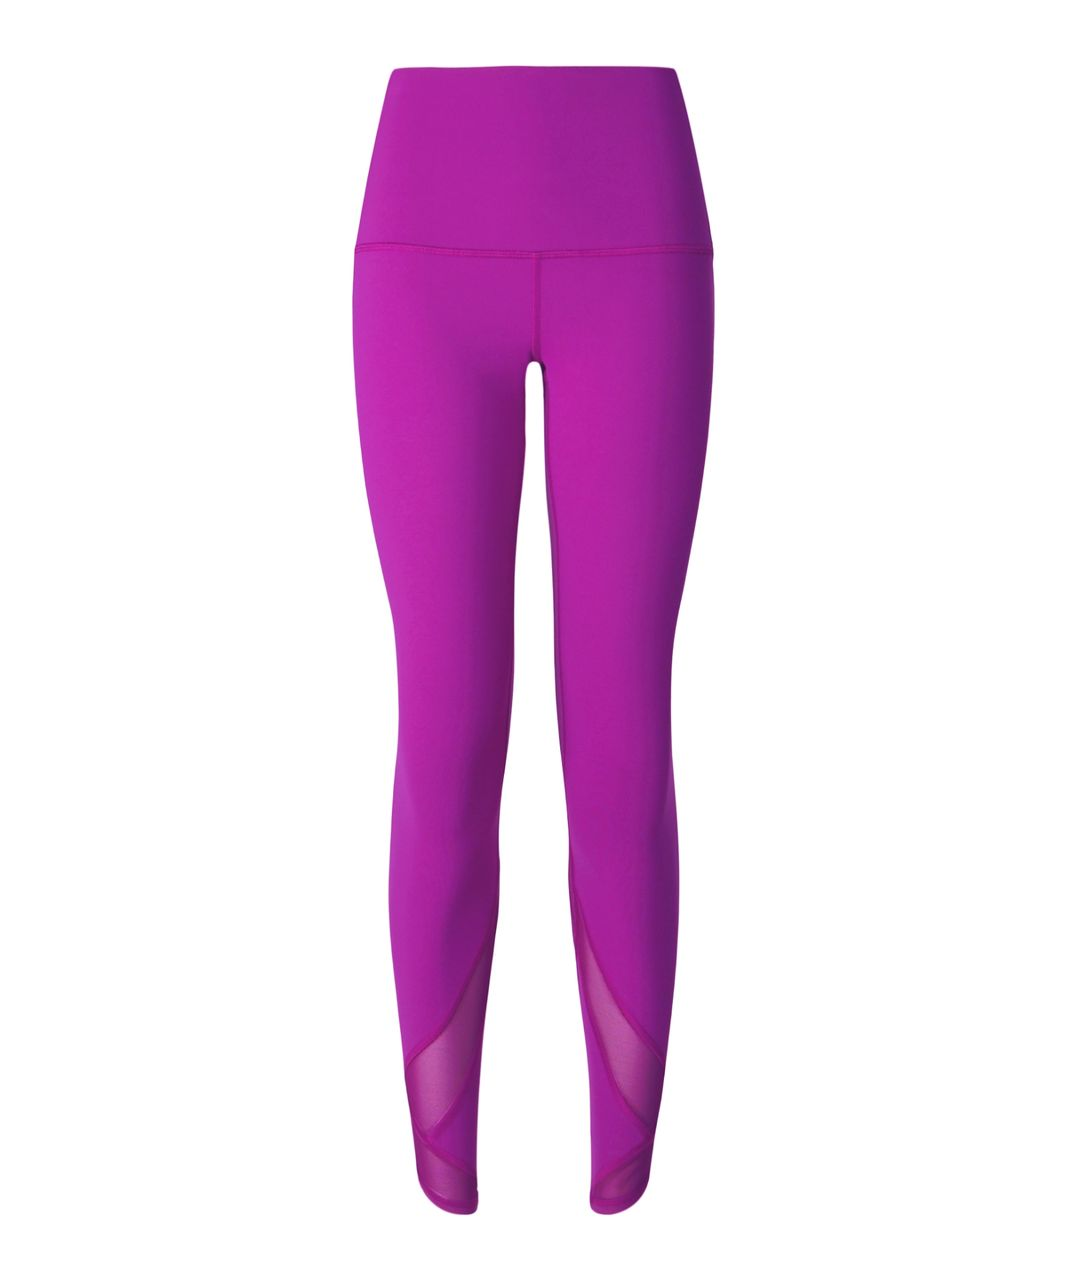 Lululemon Tranquil Tight - Regal Plum